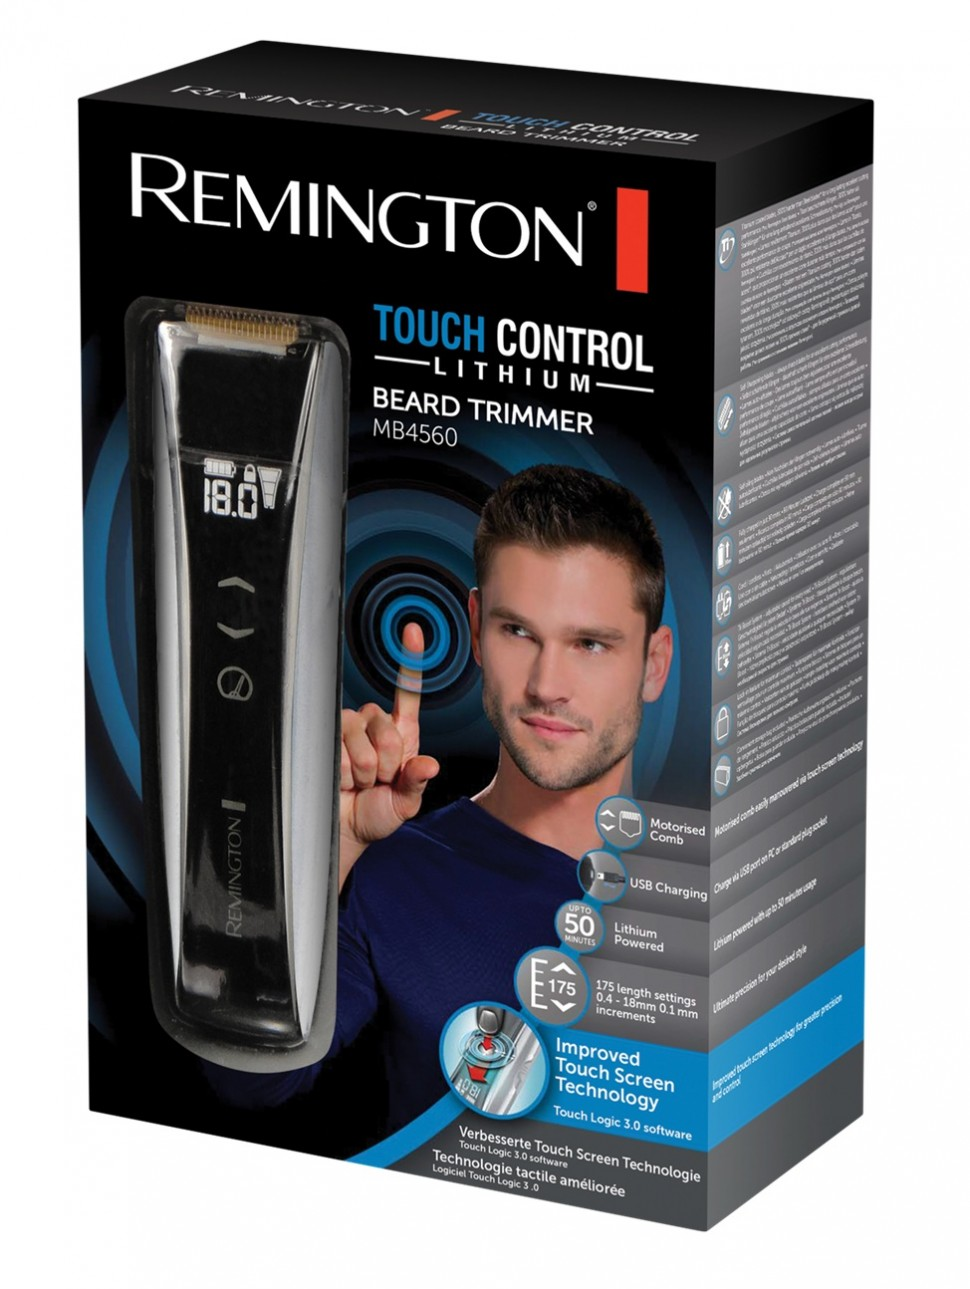 remington mb4560 touch control beard trimmer titanium coated blades genuine new 4008496818693 ebay. Black Bedroom Furniture Sets. Home Design Ideas